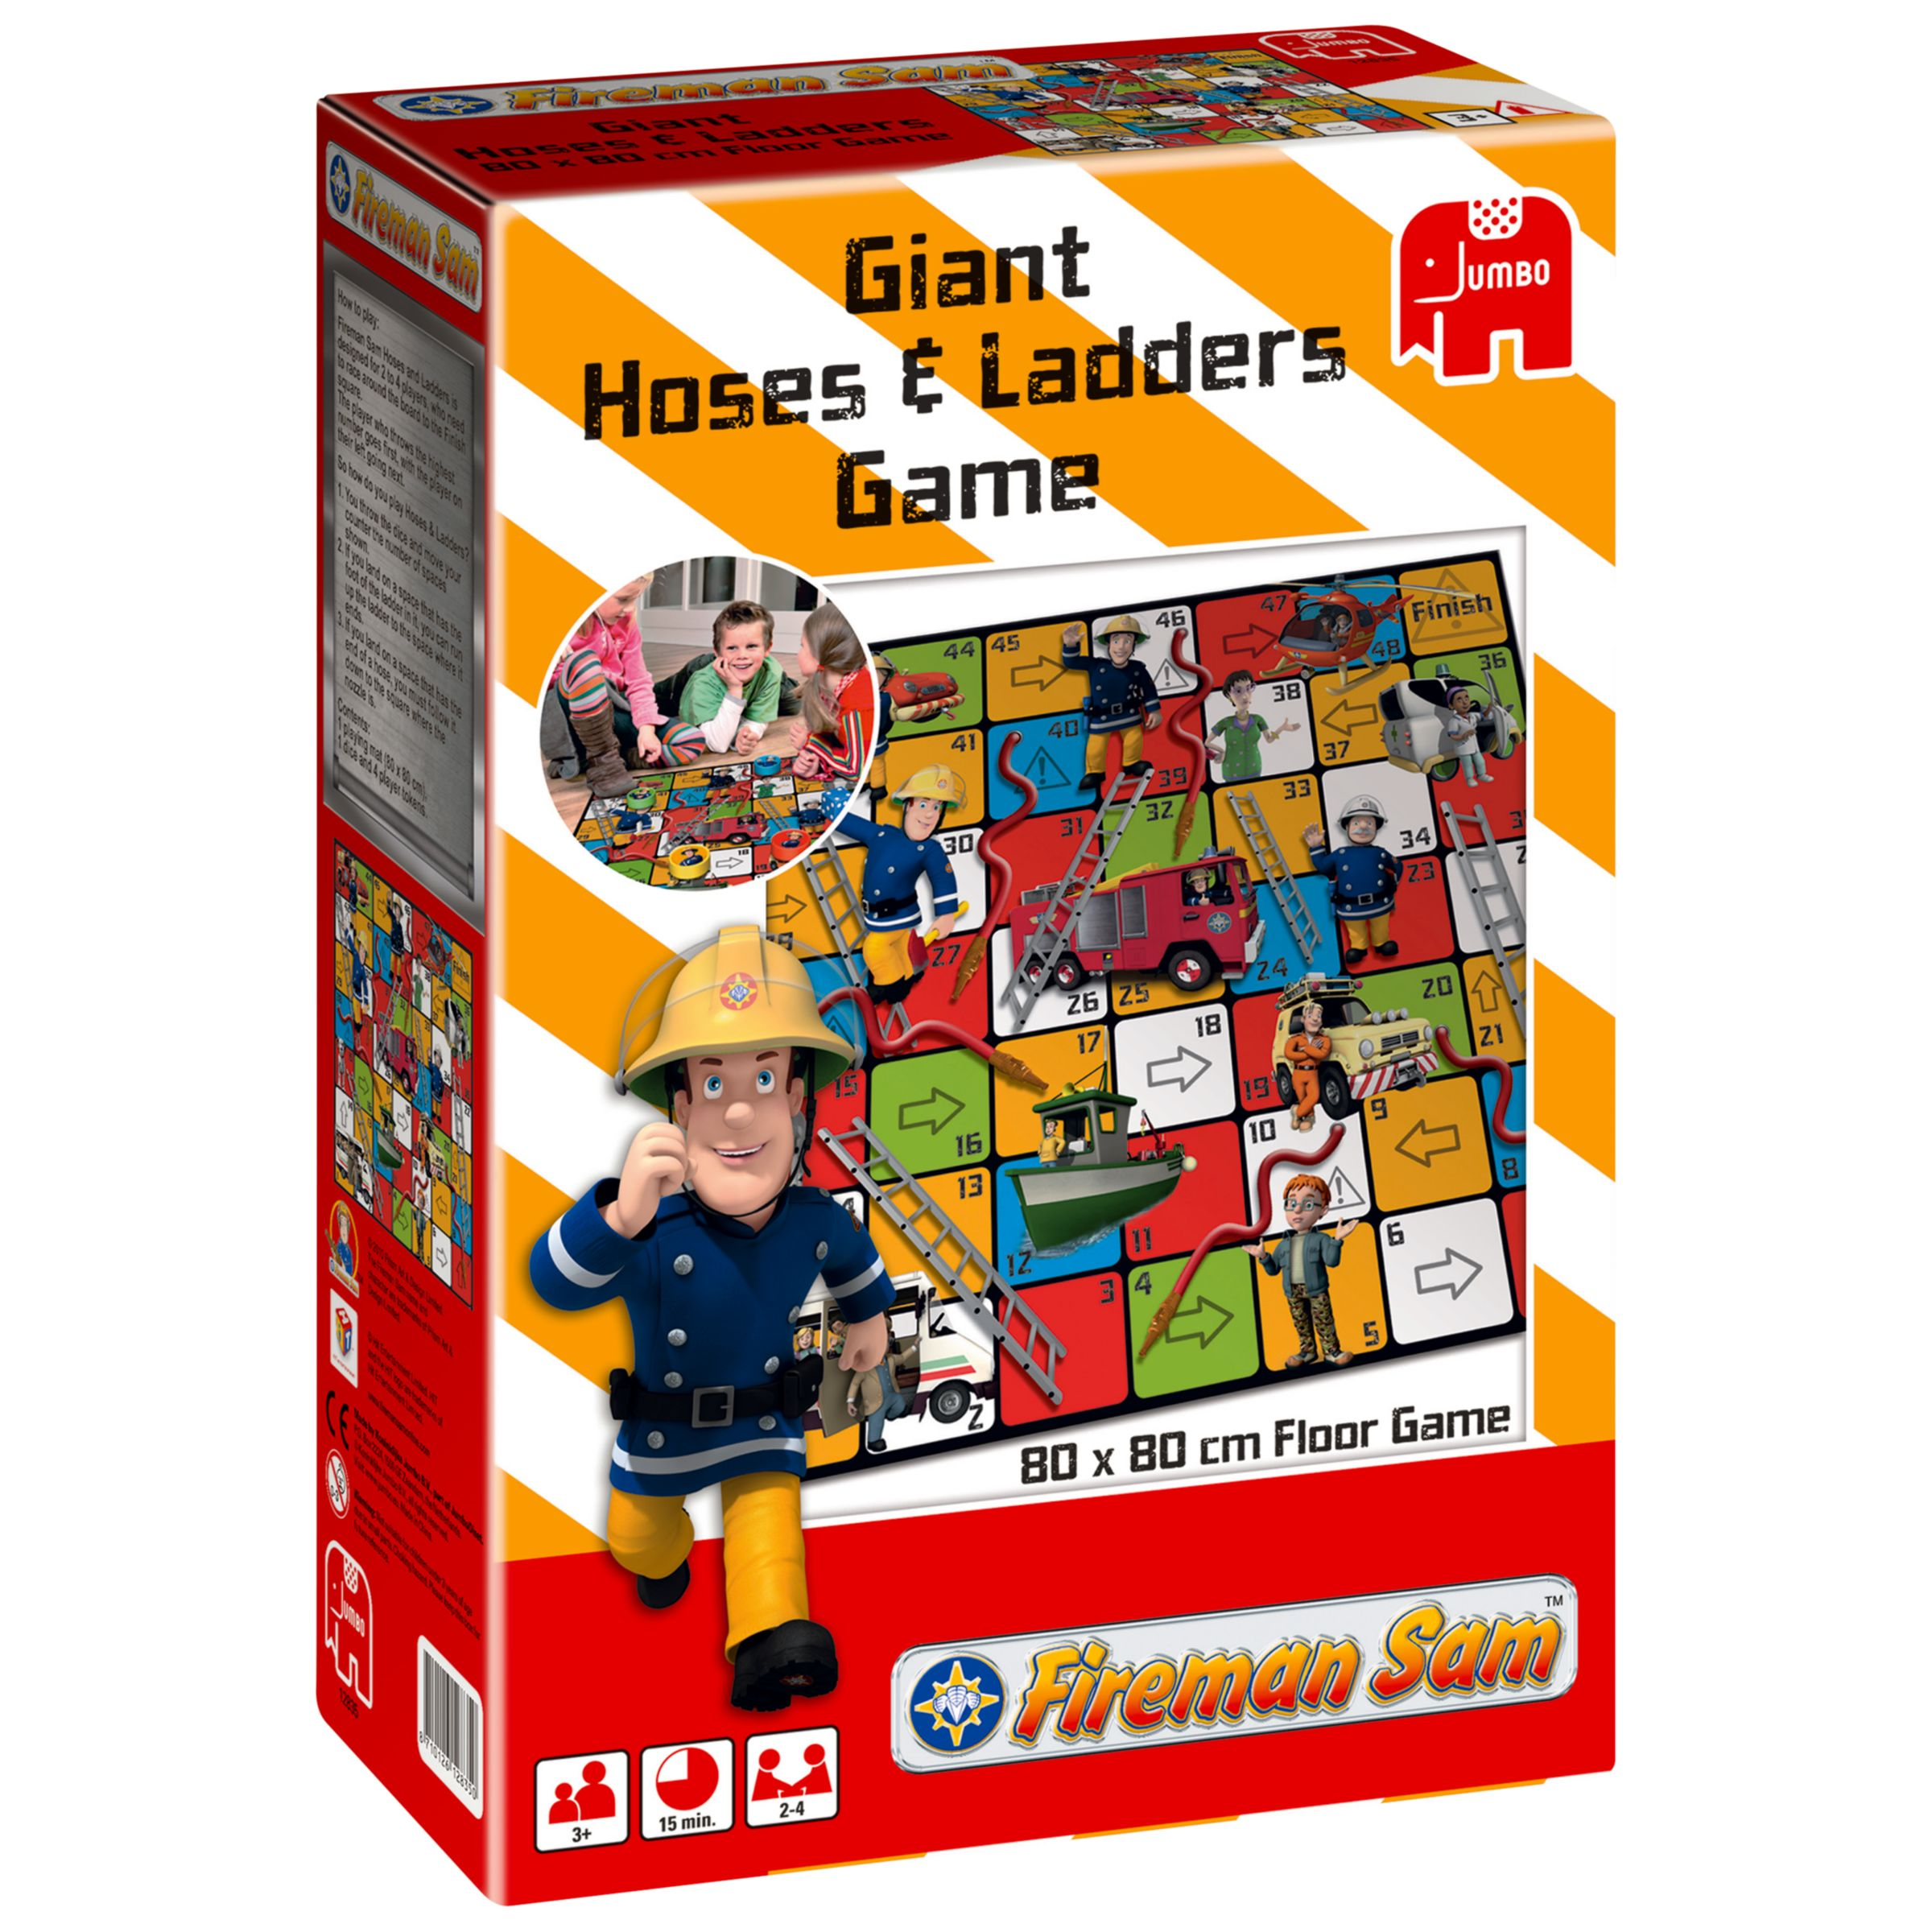 Fireman Sam Hoses and Ladders Game